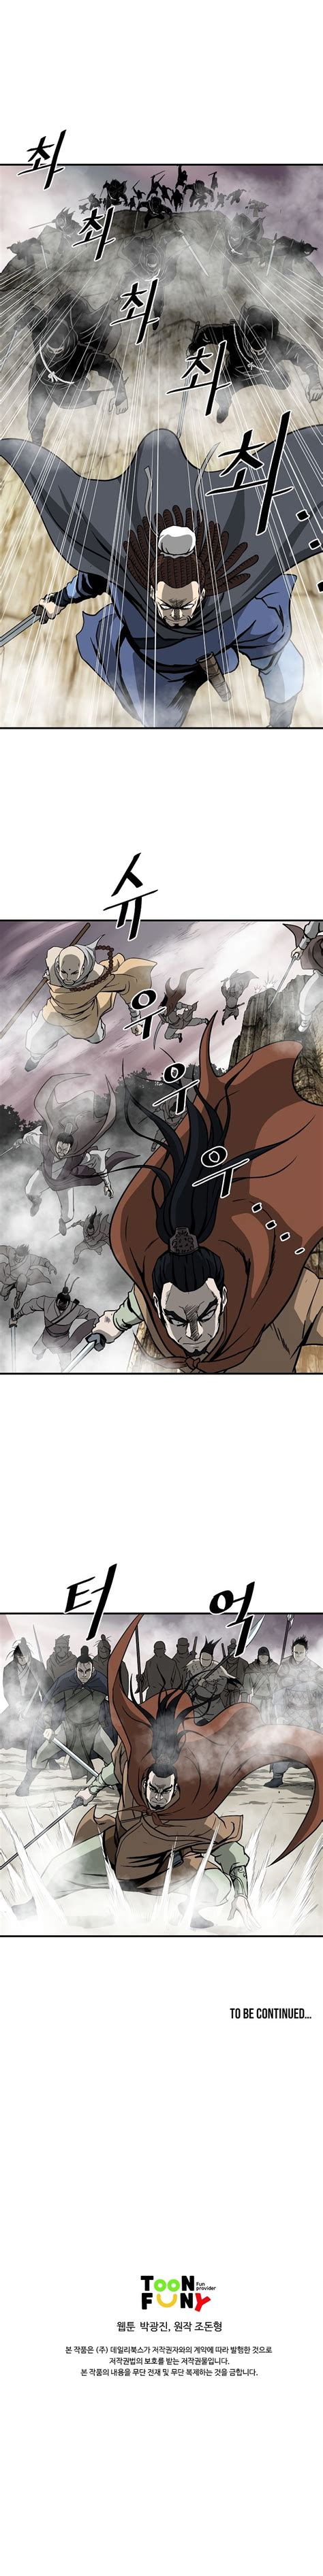 What could possibly be scarier than that? Bowblade Spirit - Chapter 43 - Manga Rock Team - Read Manga Online For Free